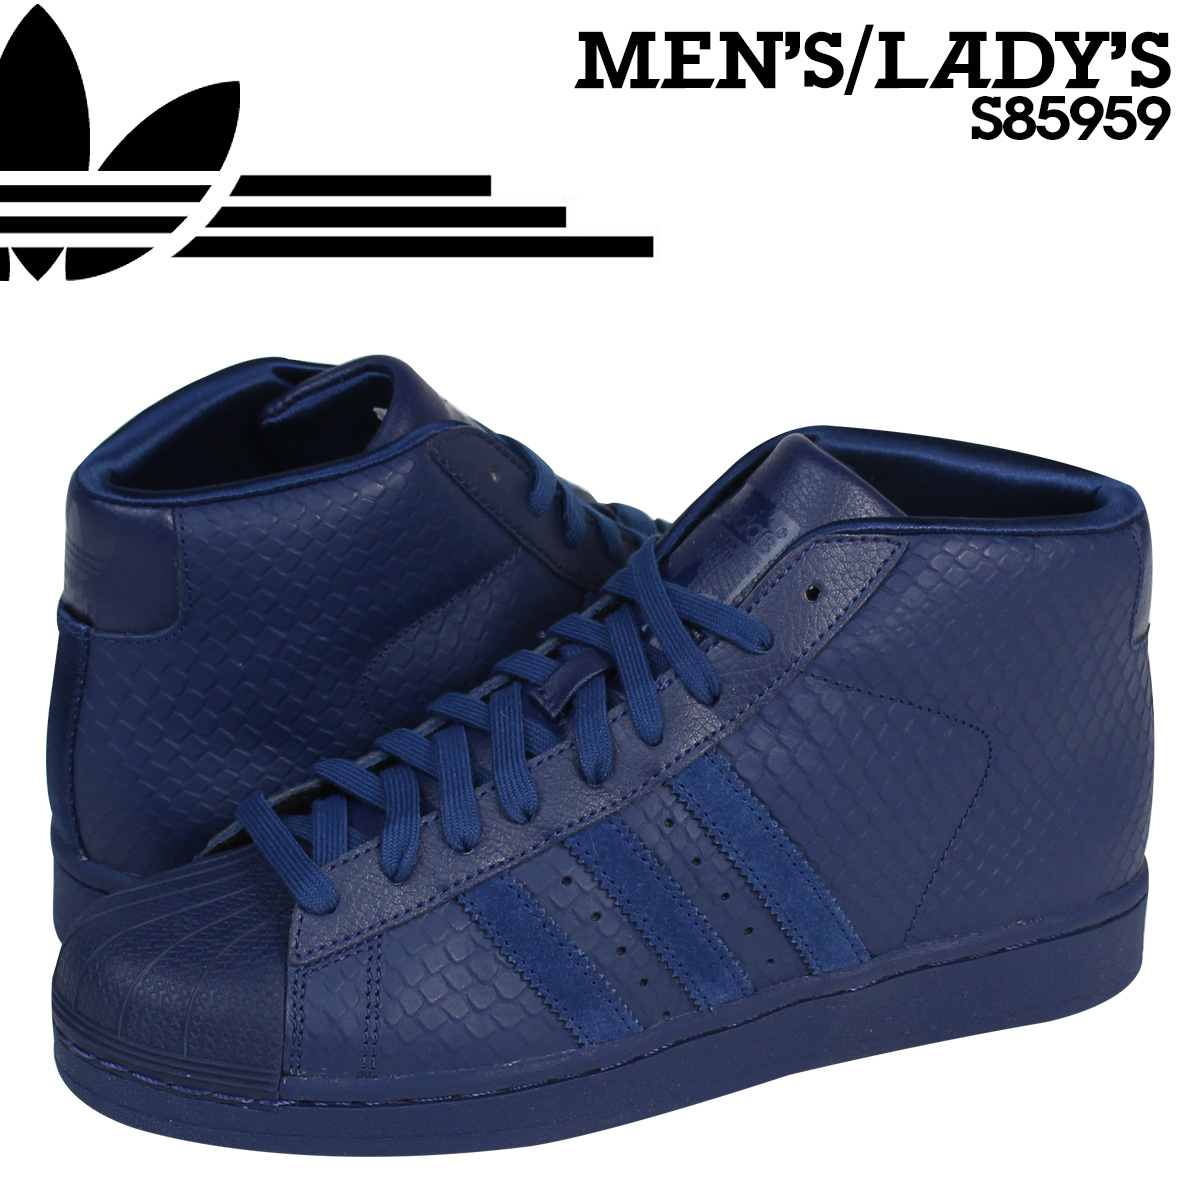 adidas Originals adidas original Pro model sneakers PRO MODEL SNAKE S85959 men's women's shoes blue